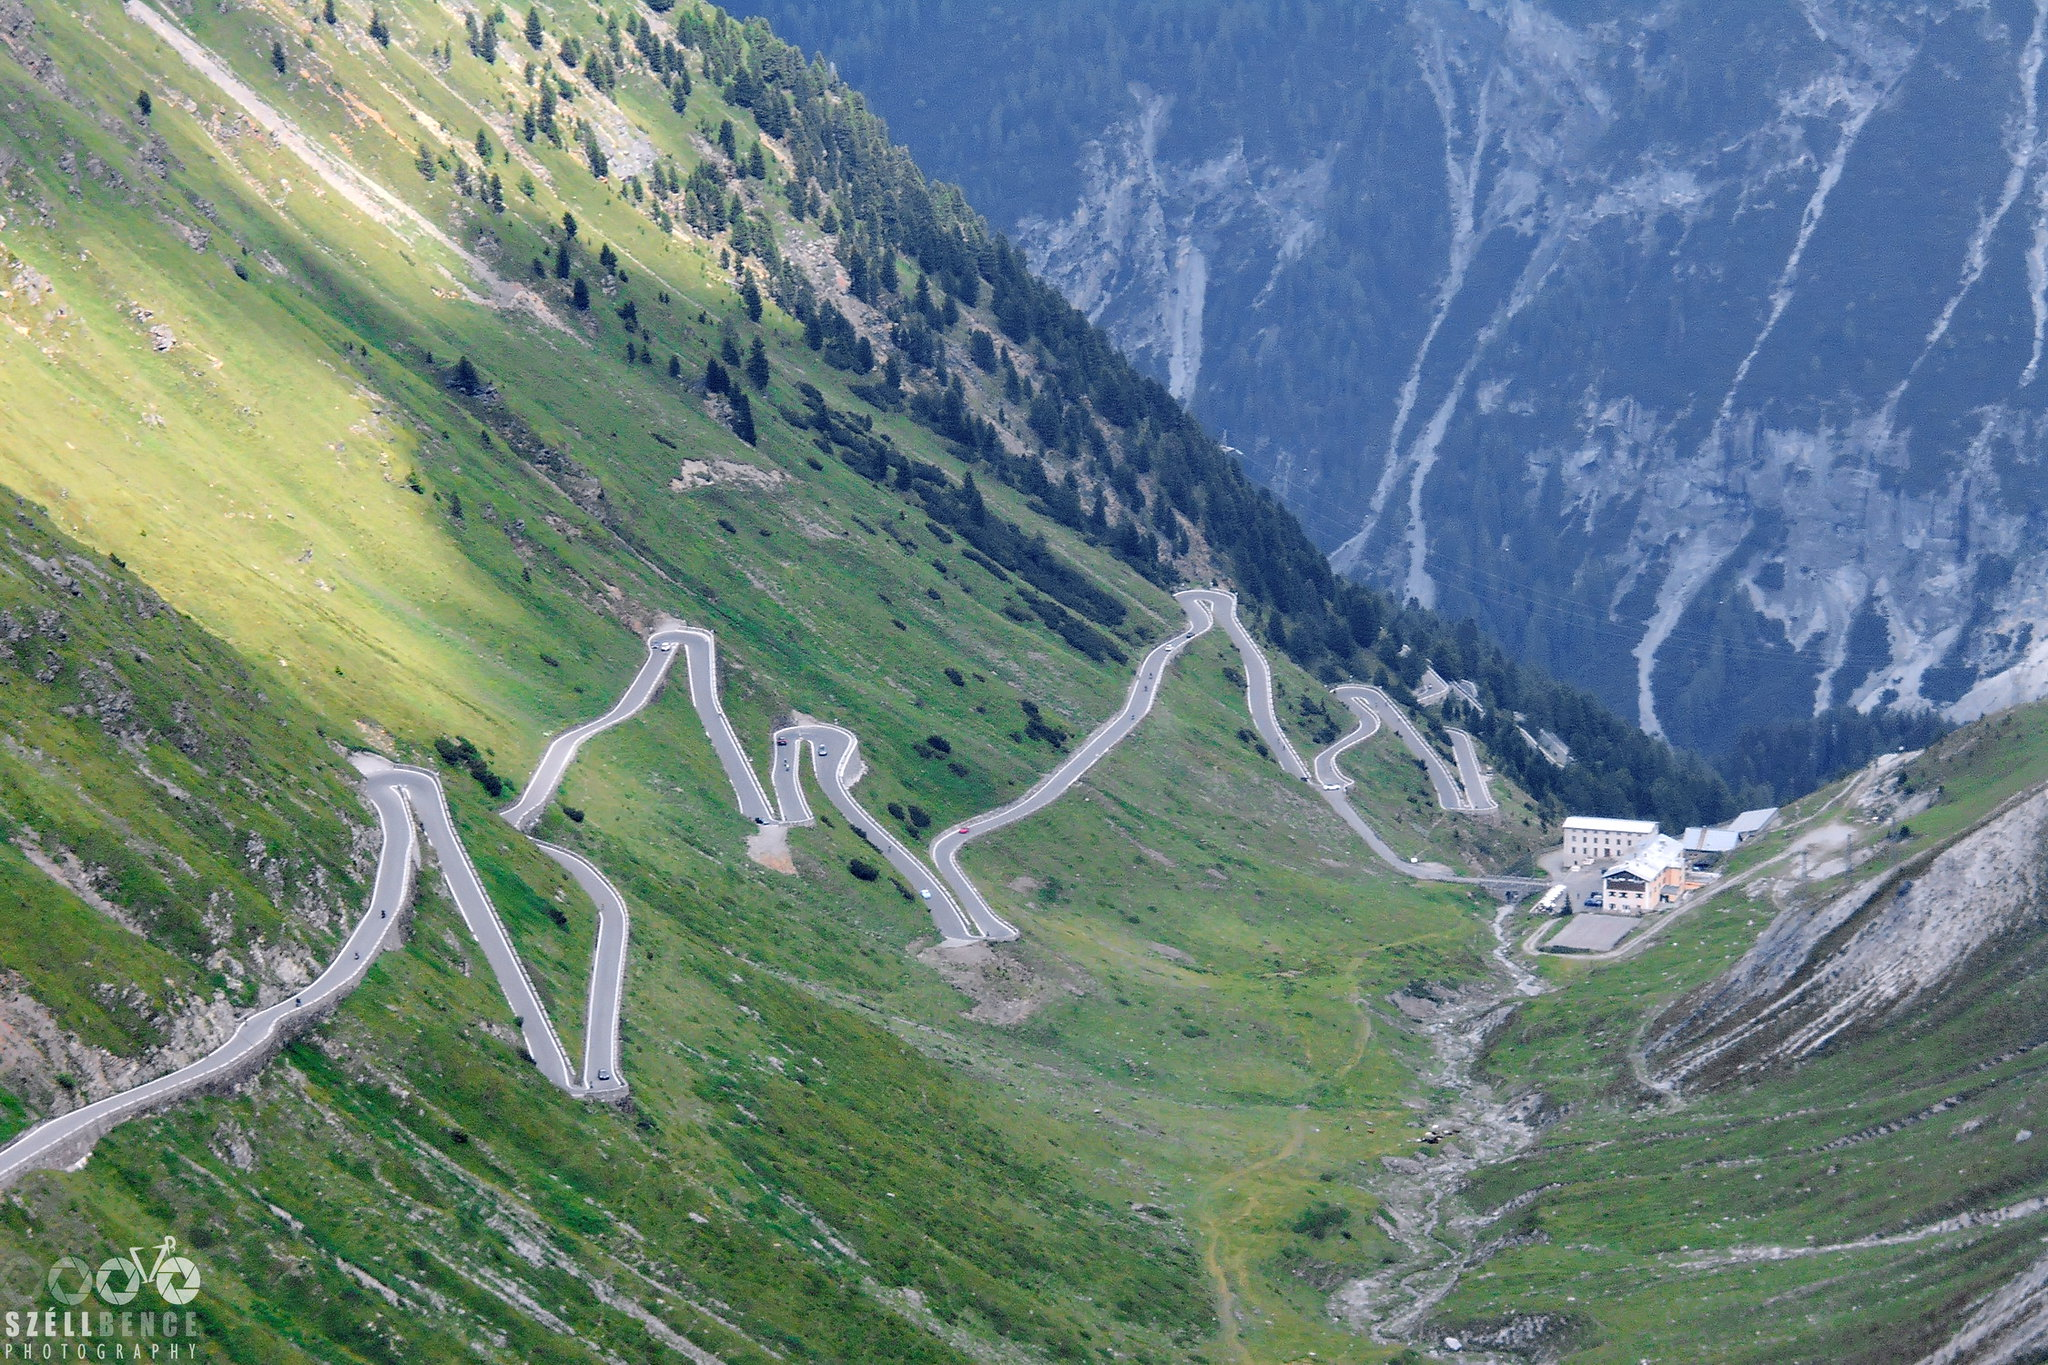 A segment of hairpins in the valley